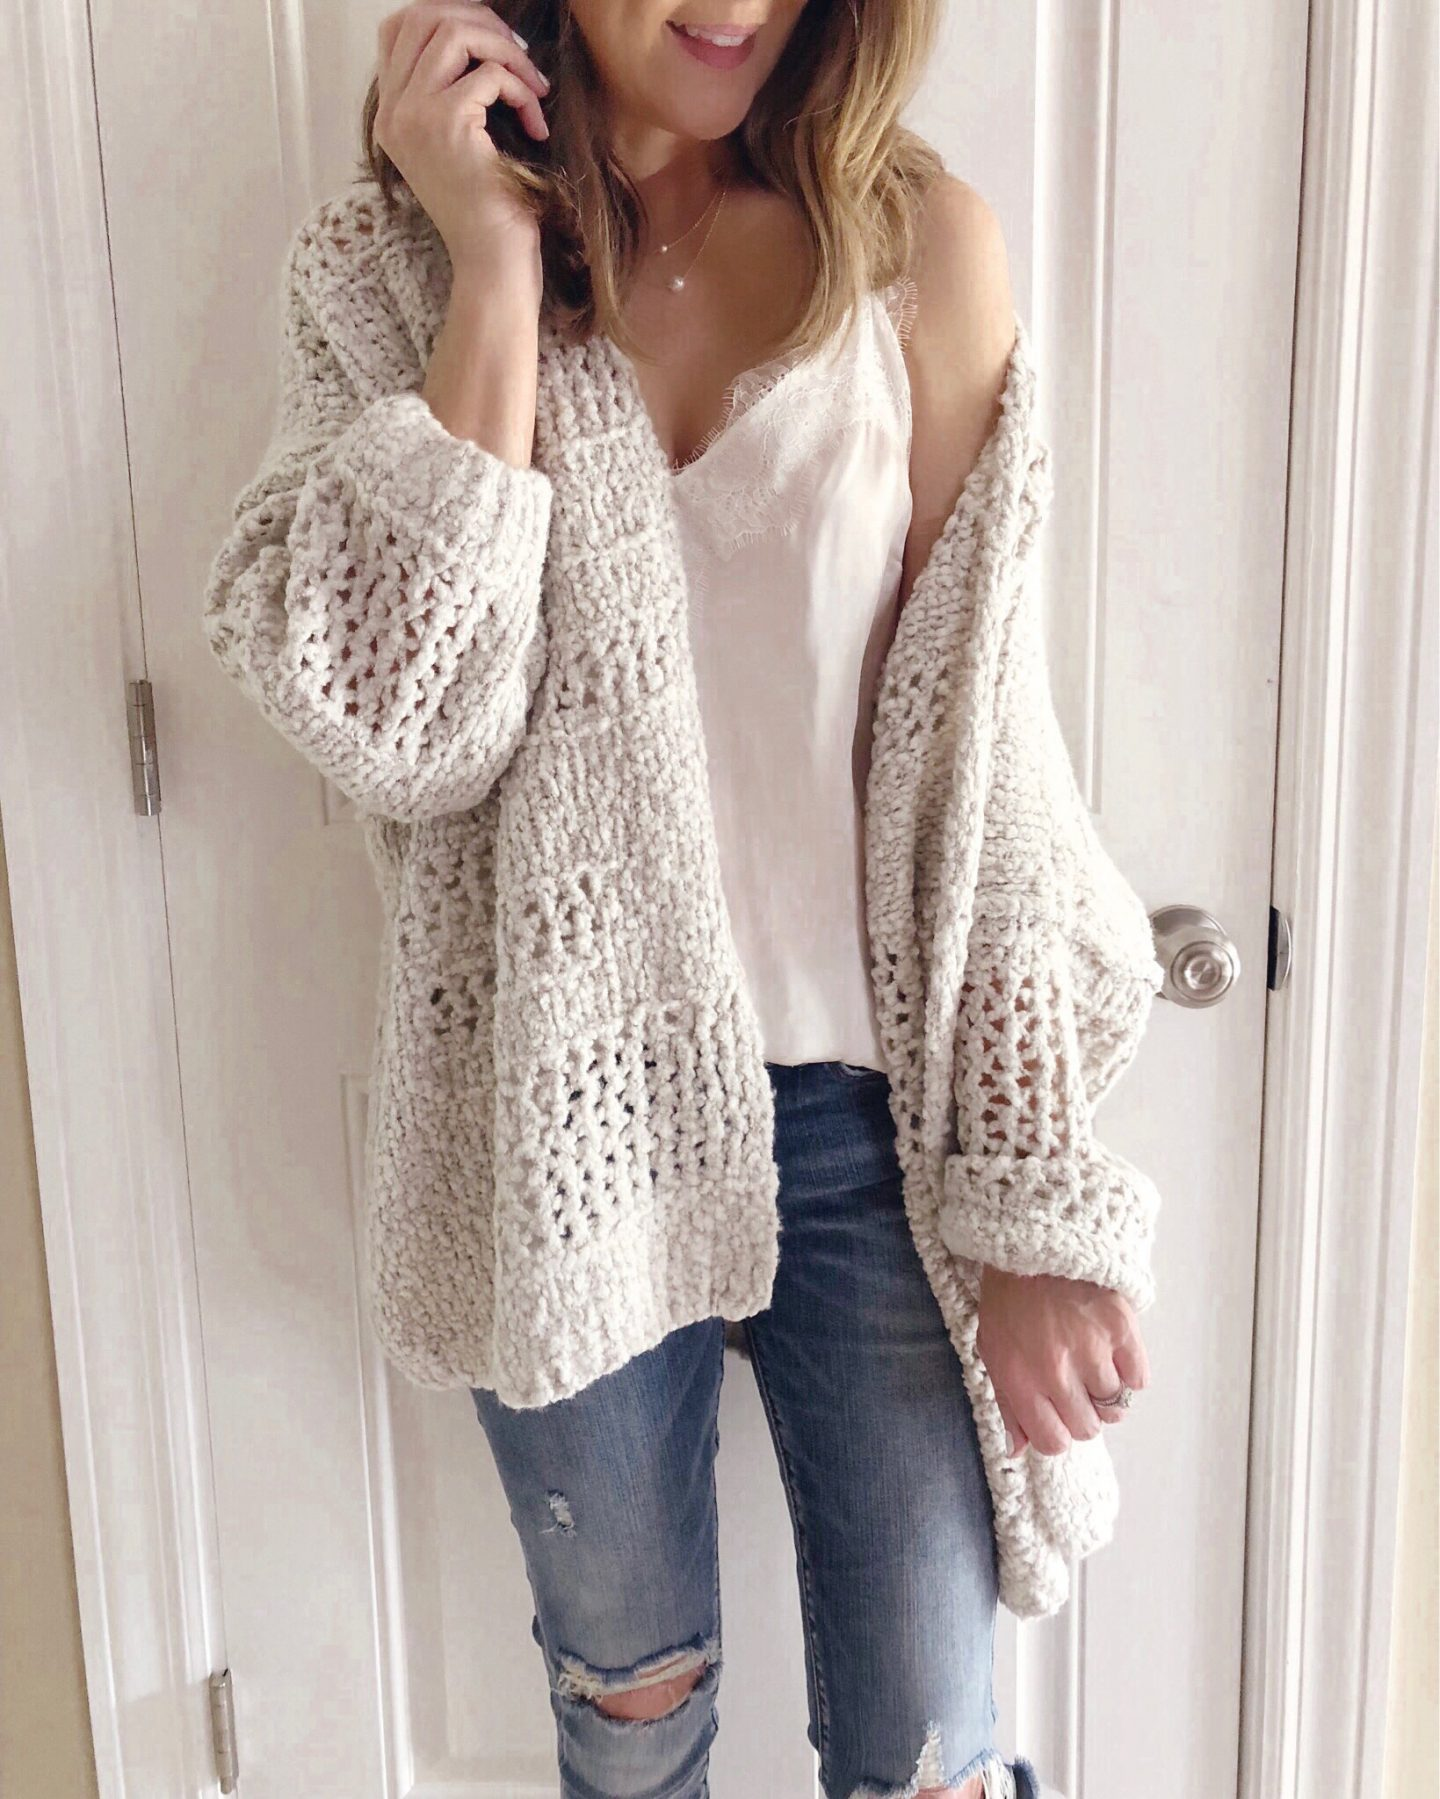 Real Life Outfits, what to wear in the fall, fall fashion 2018, how to transition summer clothing to fall, fall fashion trends for 2018, mom style, the one sweater you need for fall